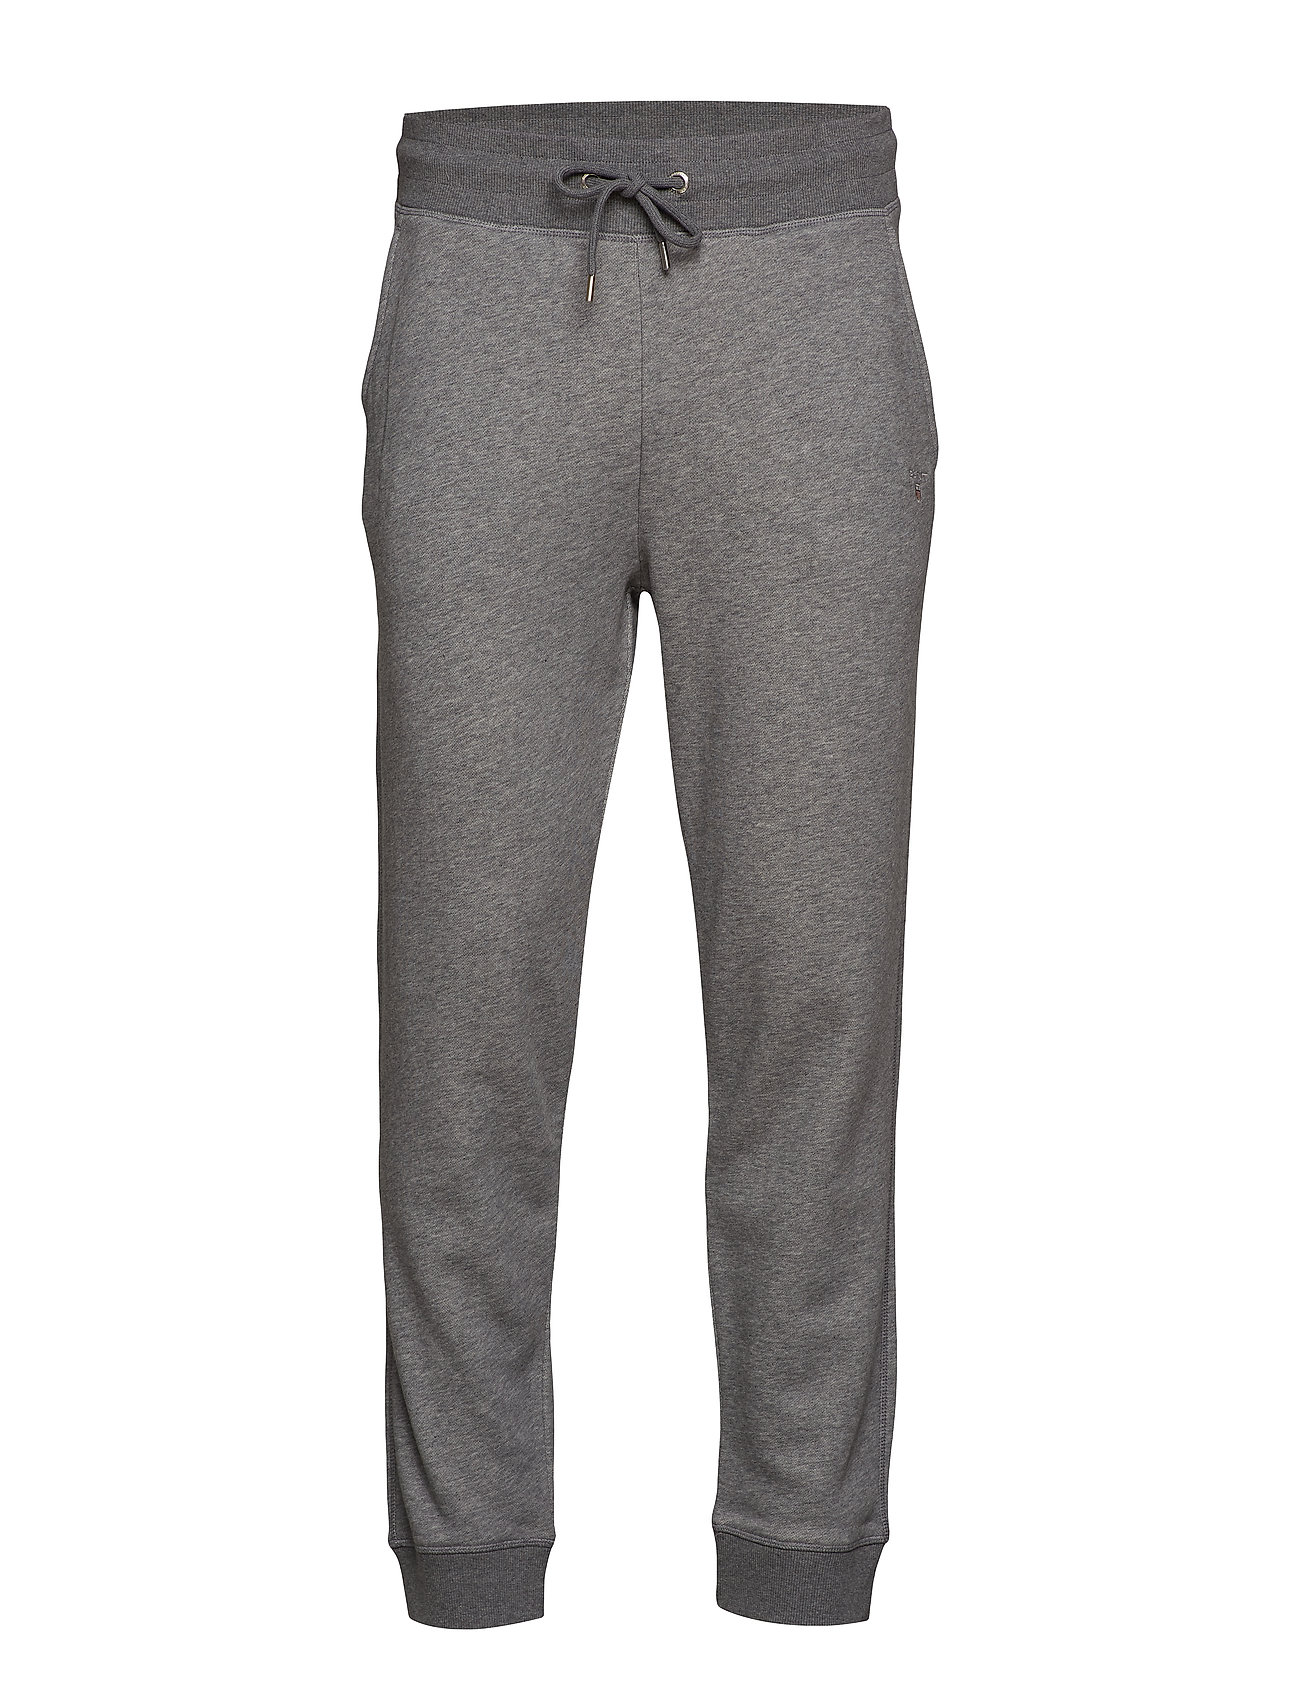 Gant THE ORIGINAL SWEAT PANTS - DARK GREY MELANGE